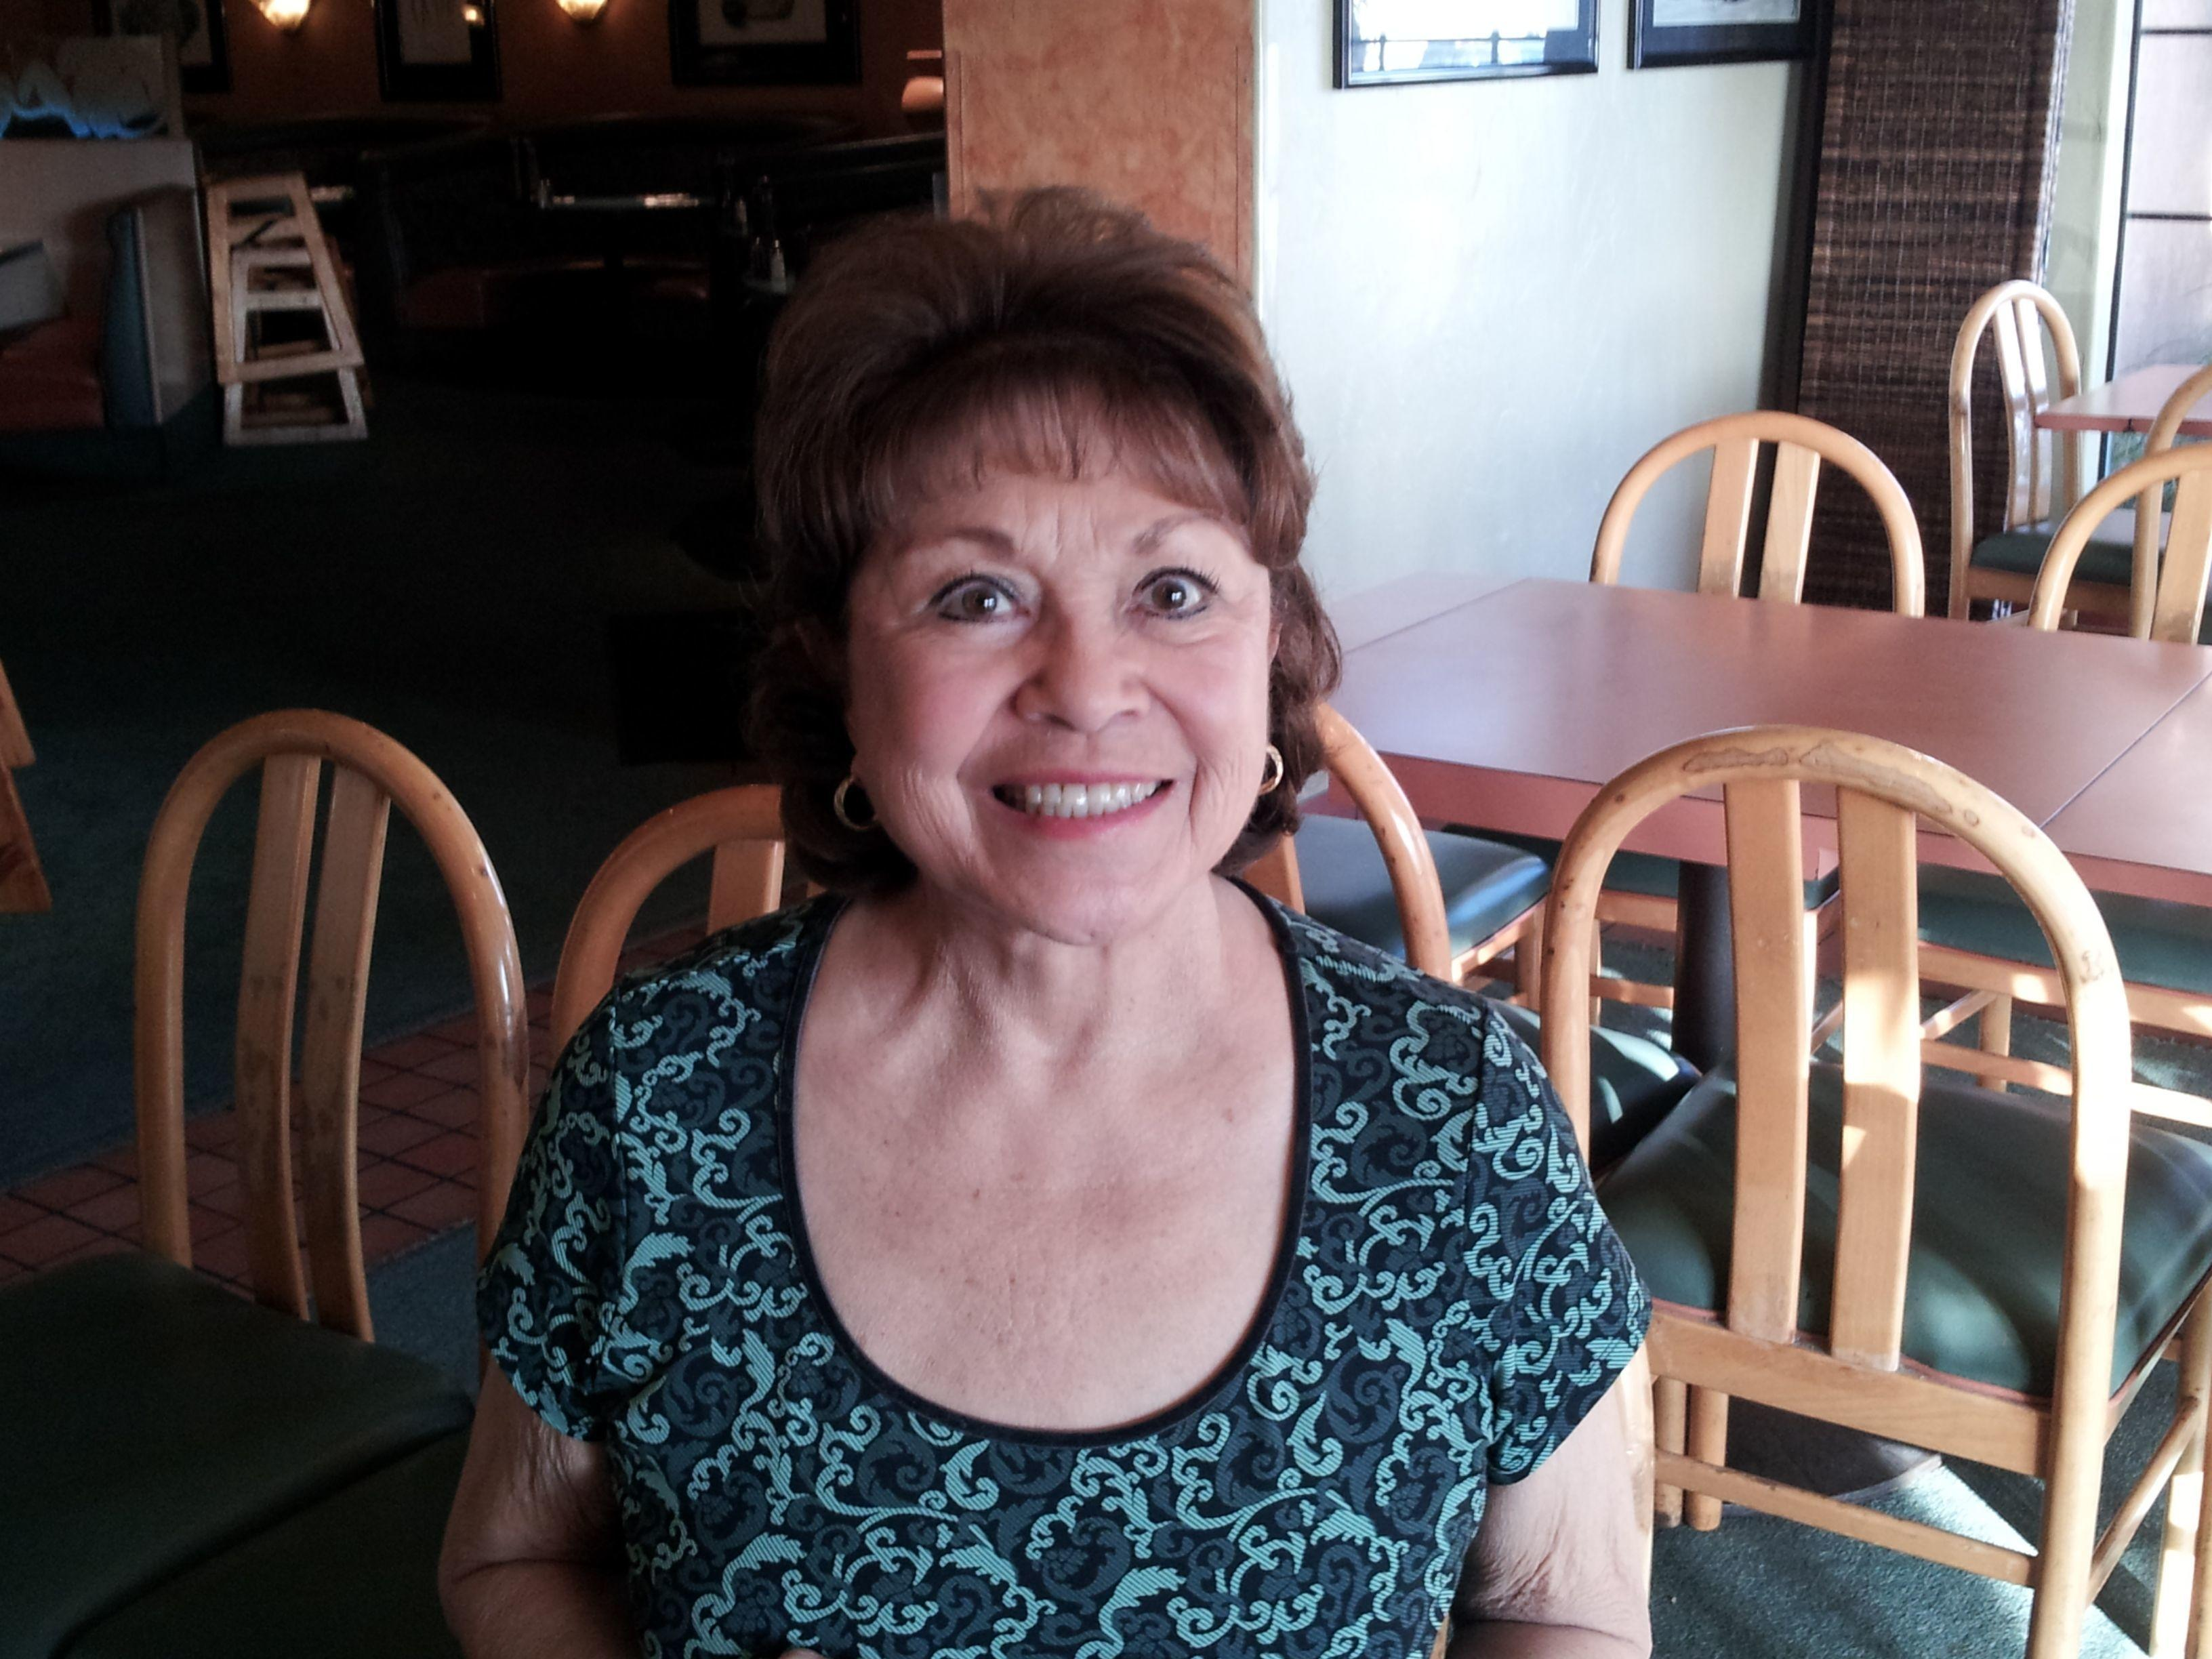 meet santee singles Santee south carolina, living life to the fullest life is to short enjoy if you only have 1 pic or no pic or only a close up pic please don't message me.